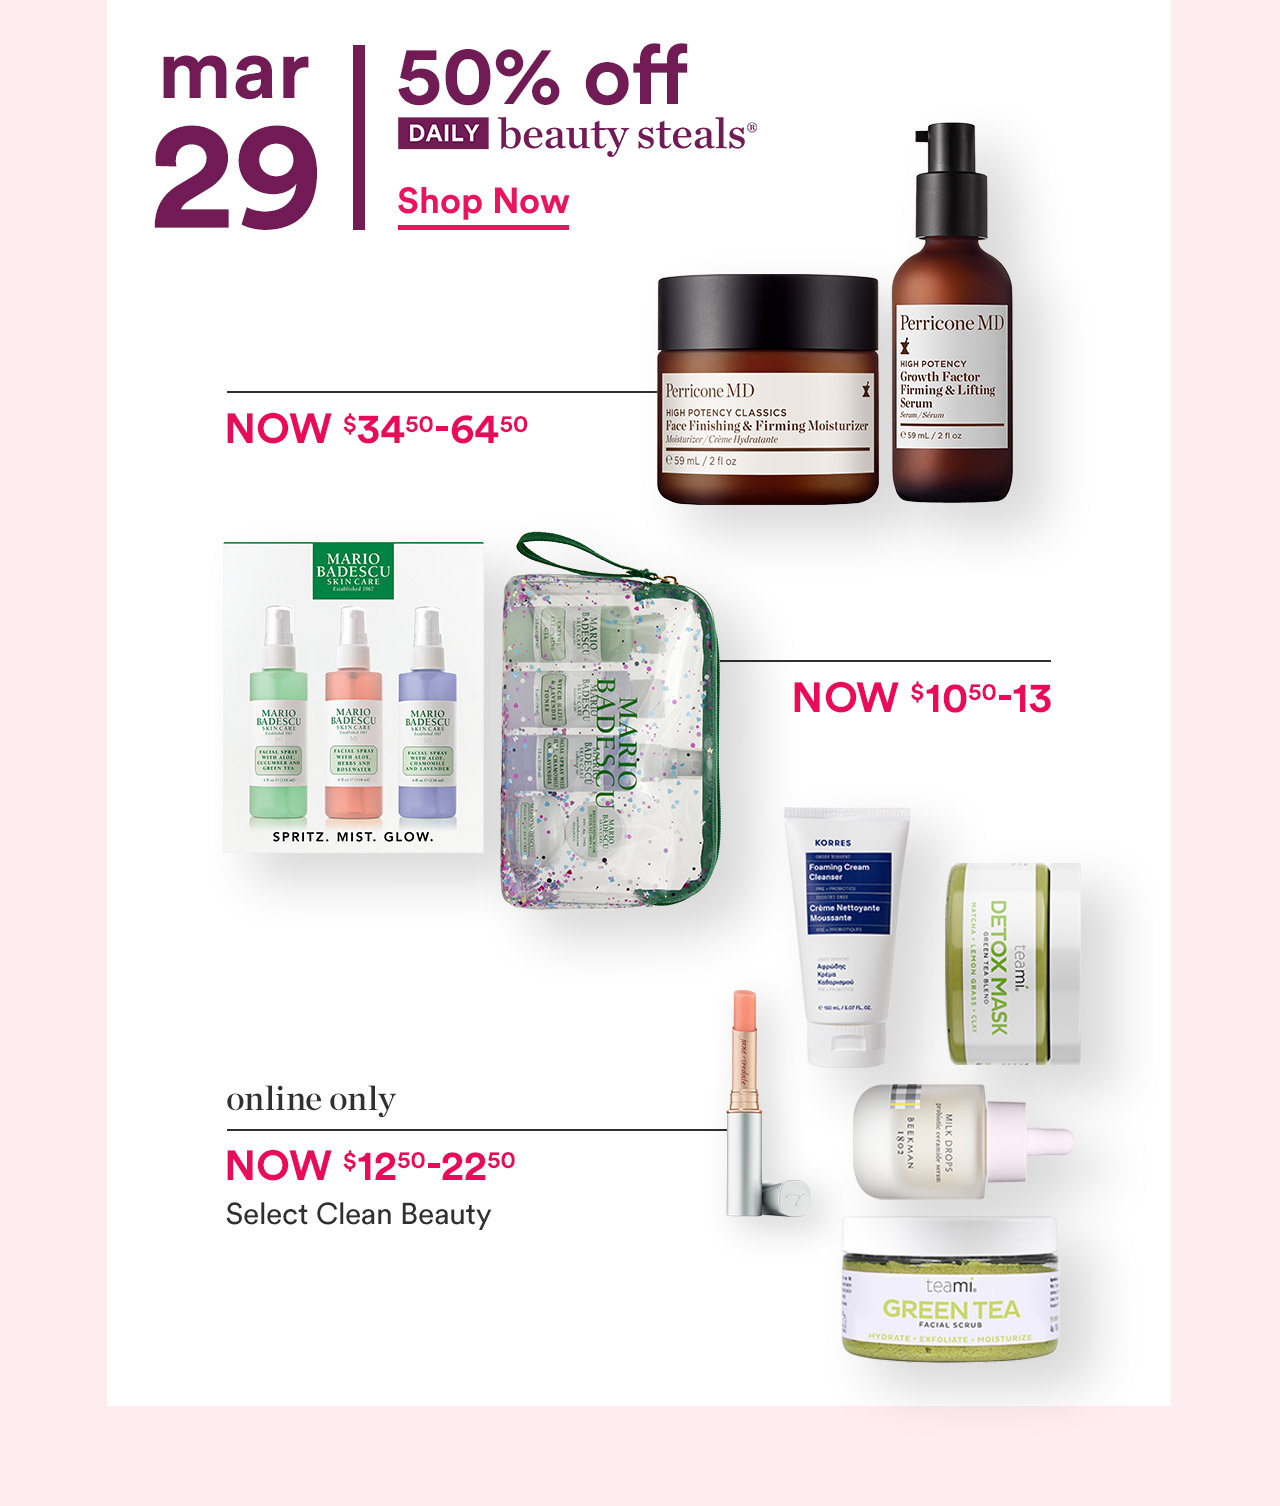 ulta 21 days of beauty event spring 2021 icangwp beauty blog march 29